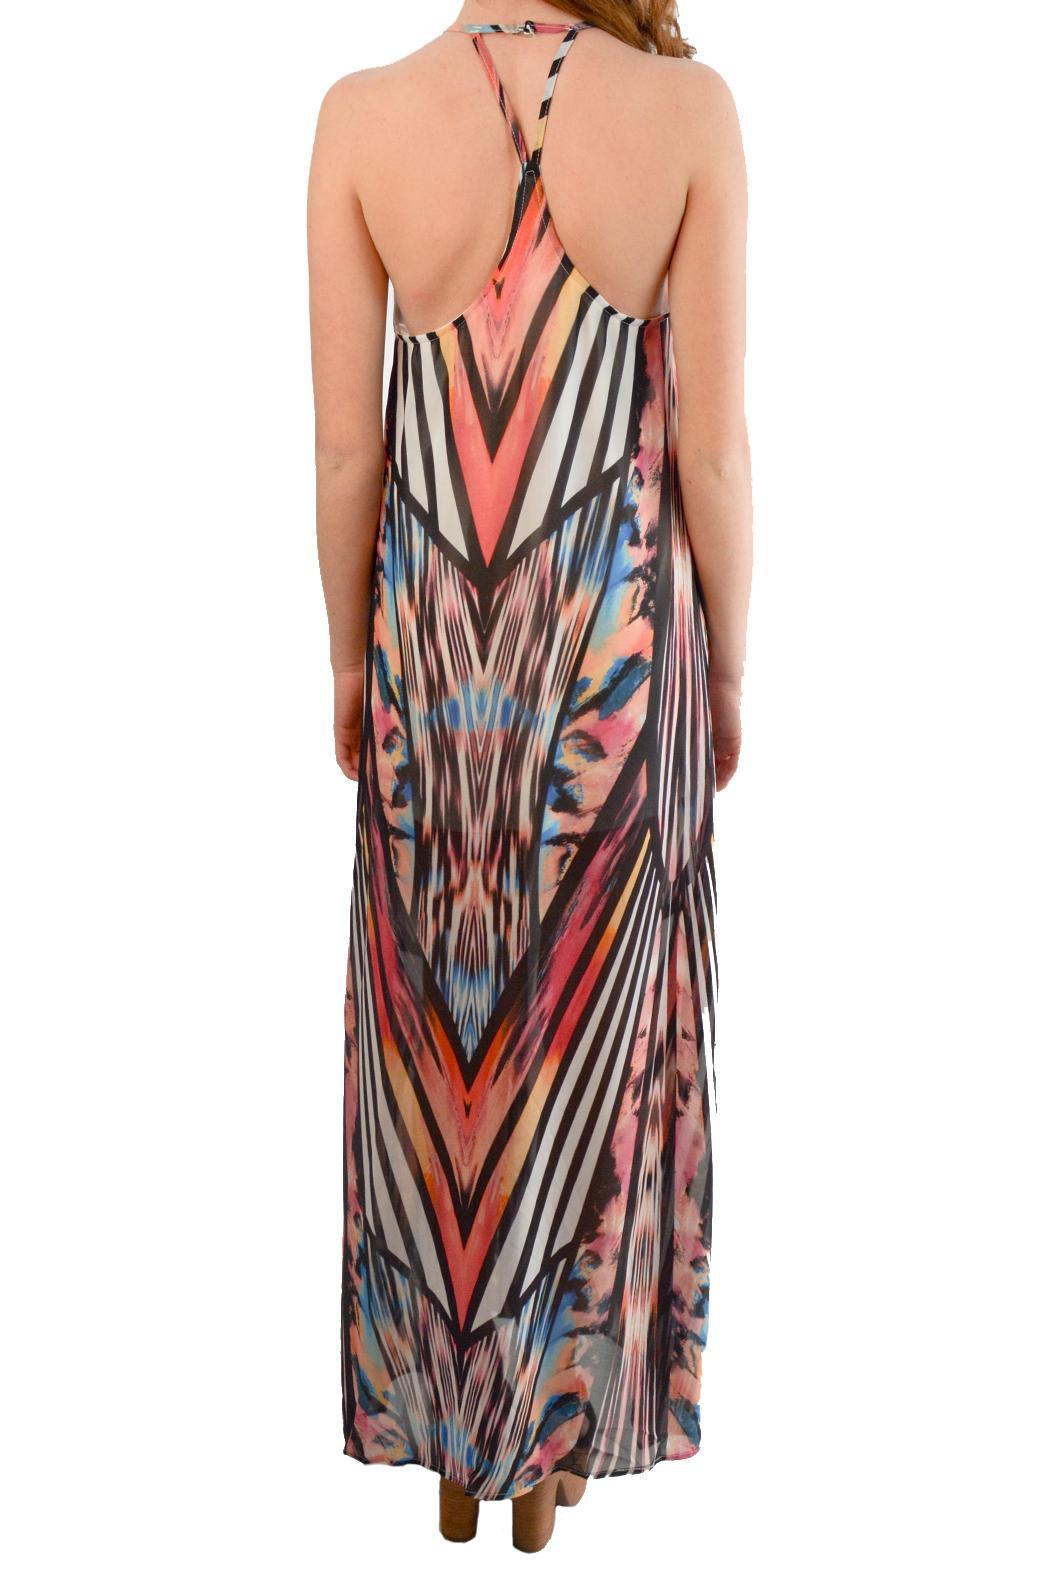 Alana Ferr Atelier Graphic Maxi Dress - Front Full Image